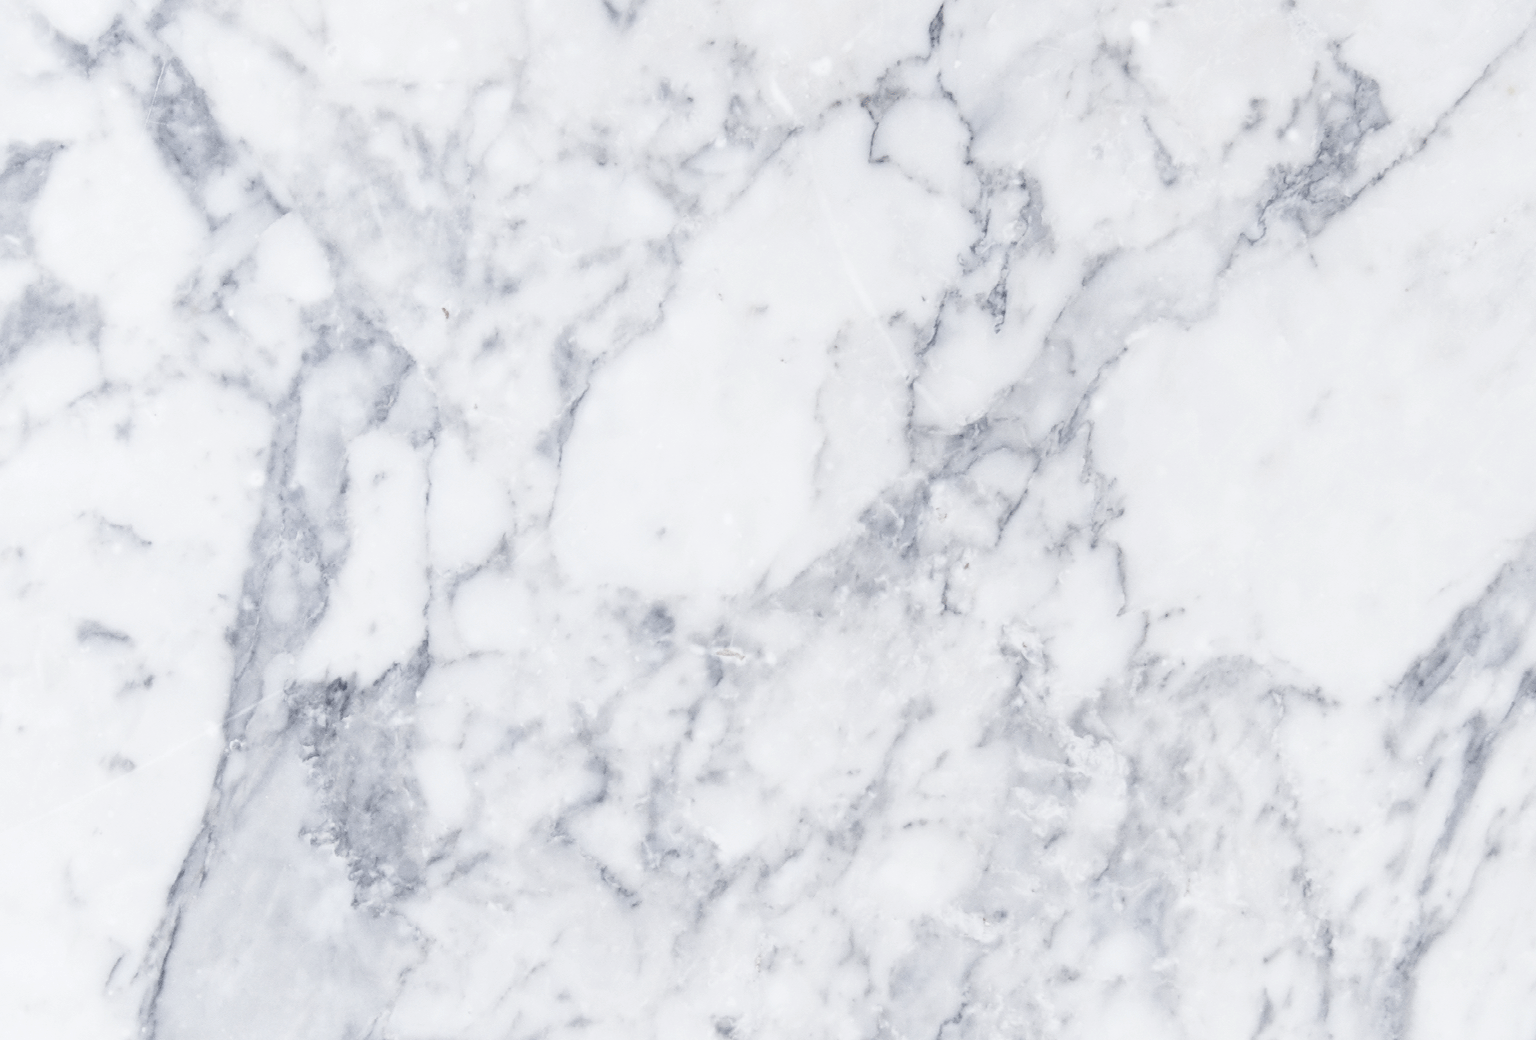 Great Wallpaper Home Screen Marble - tumblr_static_eirb7c1wt9w8wswowksk4kkg4  Image_375745.png